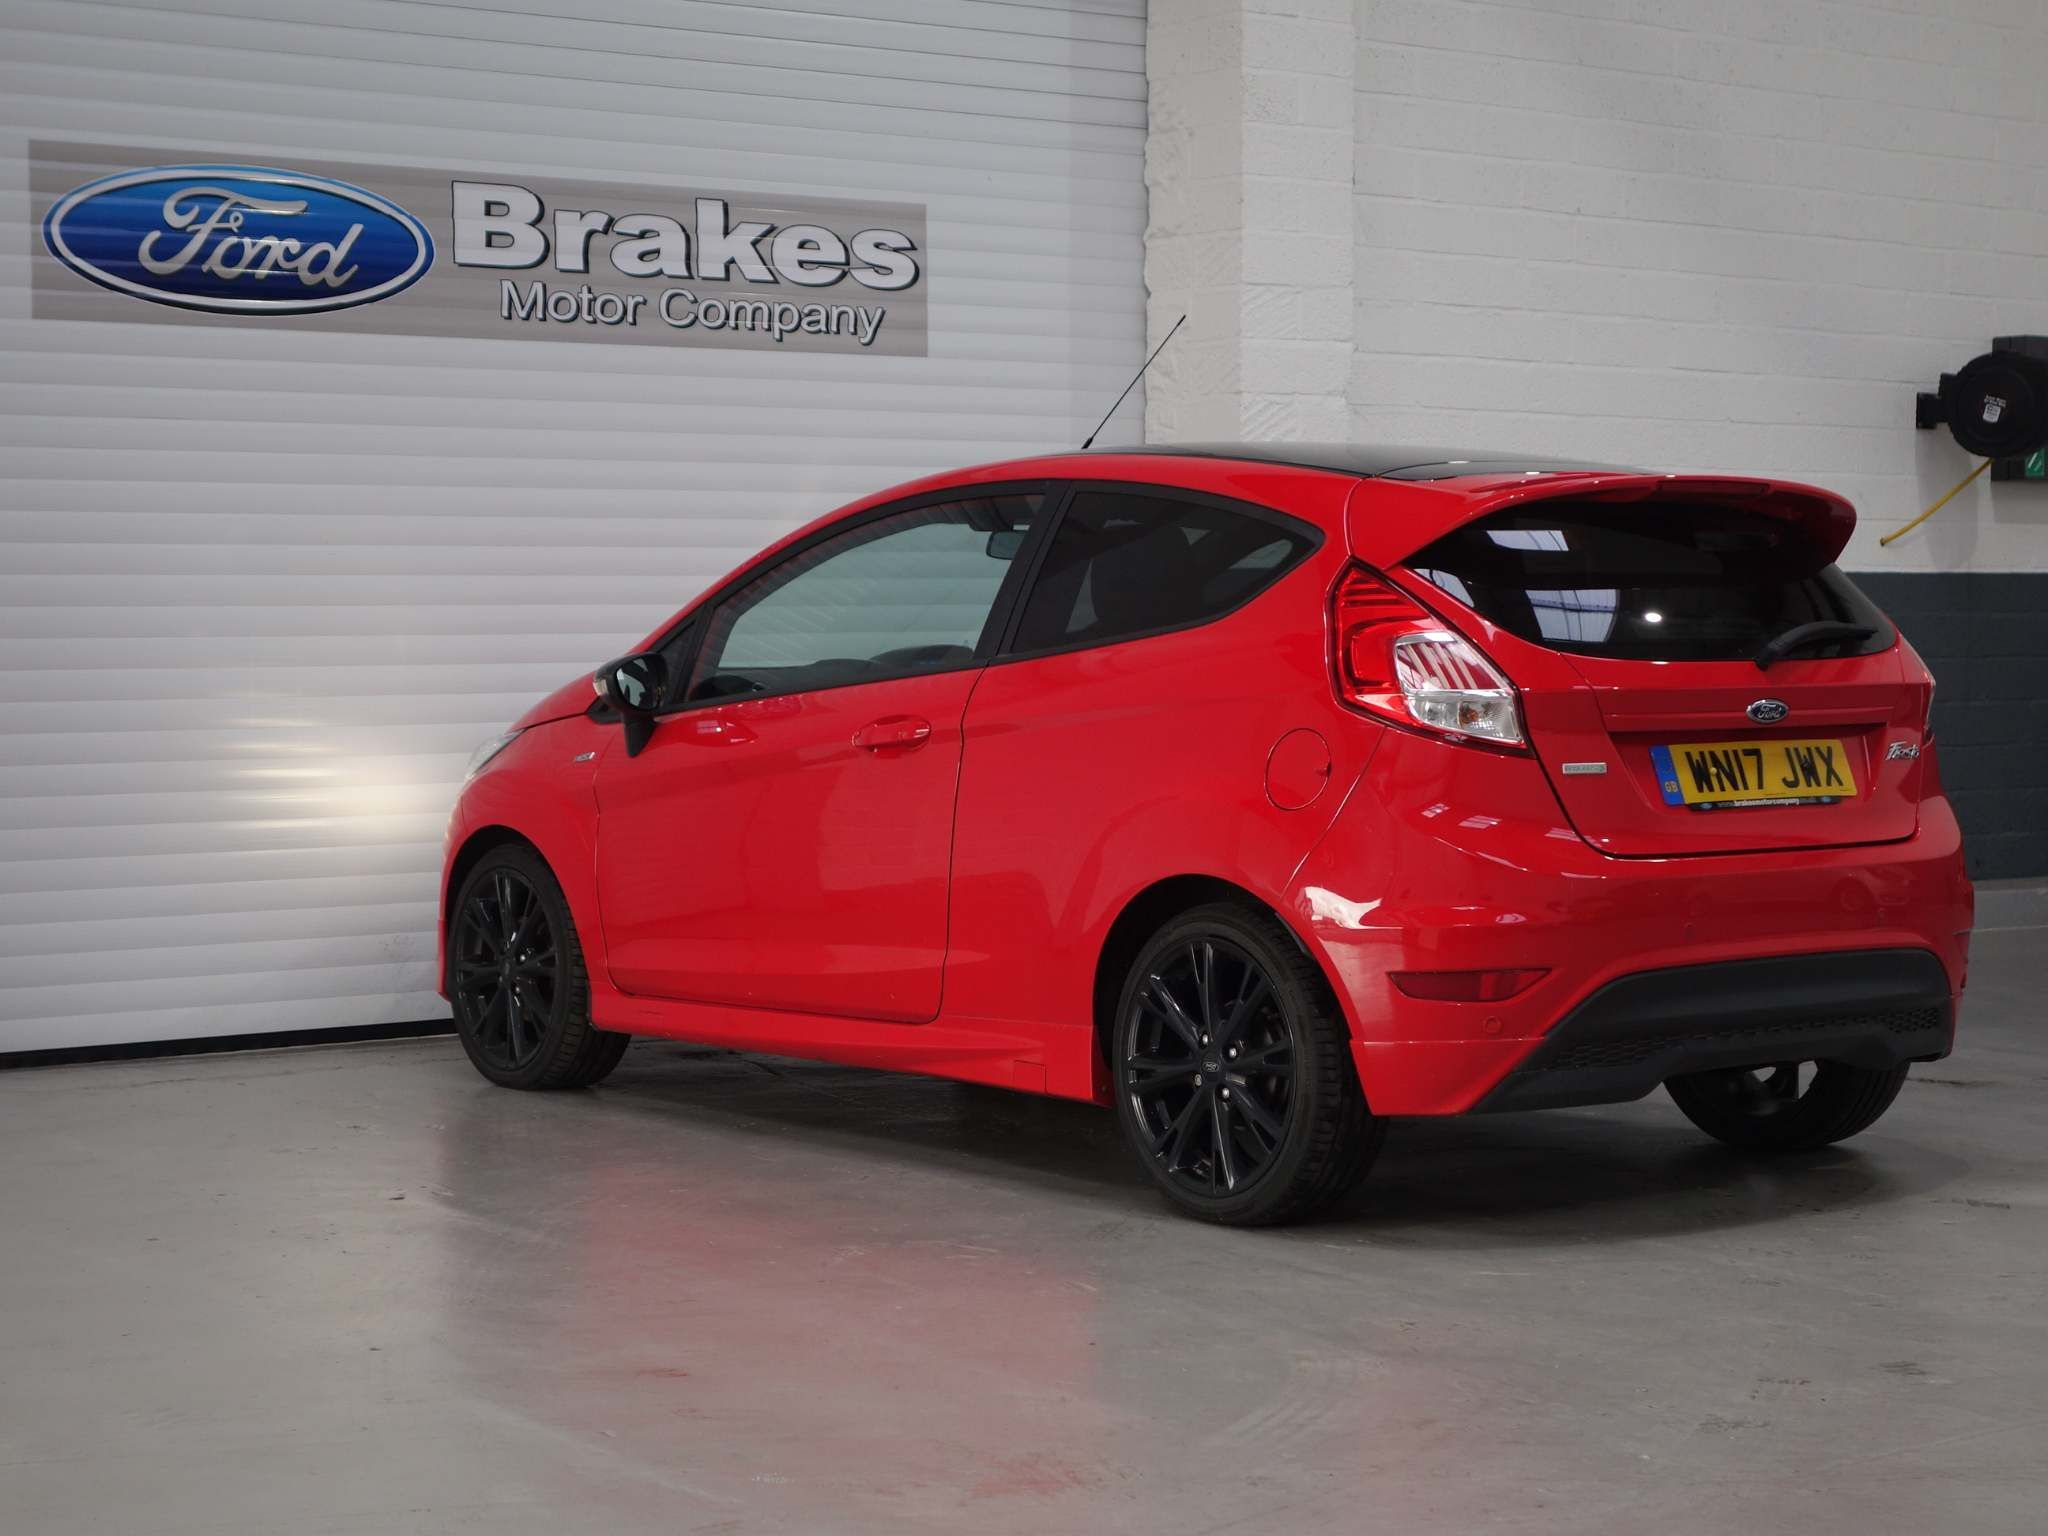 Ford Fiesta 1.0 T EcoBoost ST-Line Red Edition (s/s) 3dr – WN17JWX